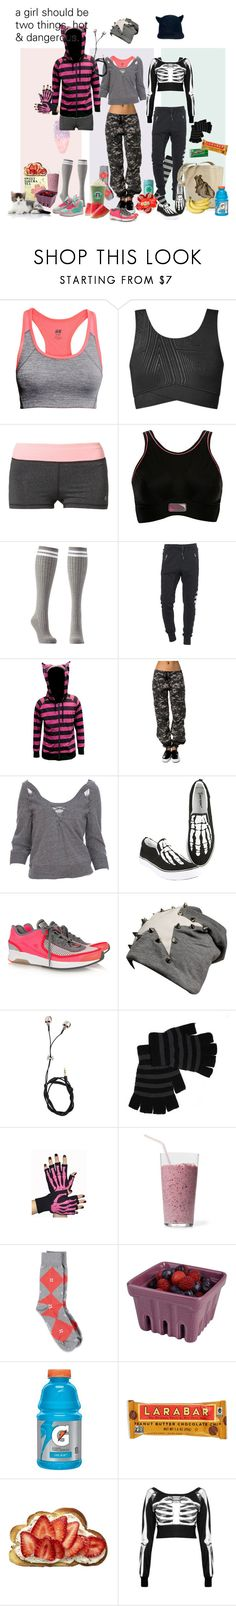 """""""Let's Go to the Gym"""" by verysmallgoddess ❤ liked on Polyvore featuring H&M, Topshop, Roxy, Charlotte Russe, True Religion, Rothco, Mike Gonzalez, Hot Topic, adidas and Givenchy"""